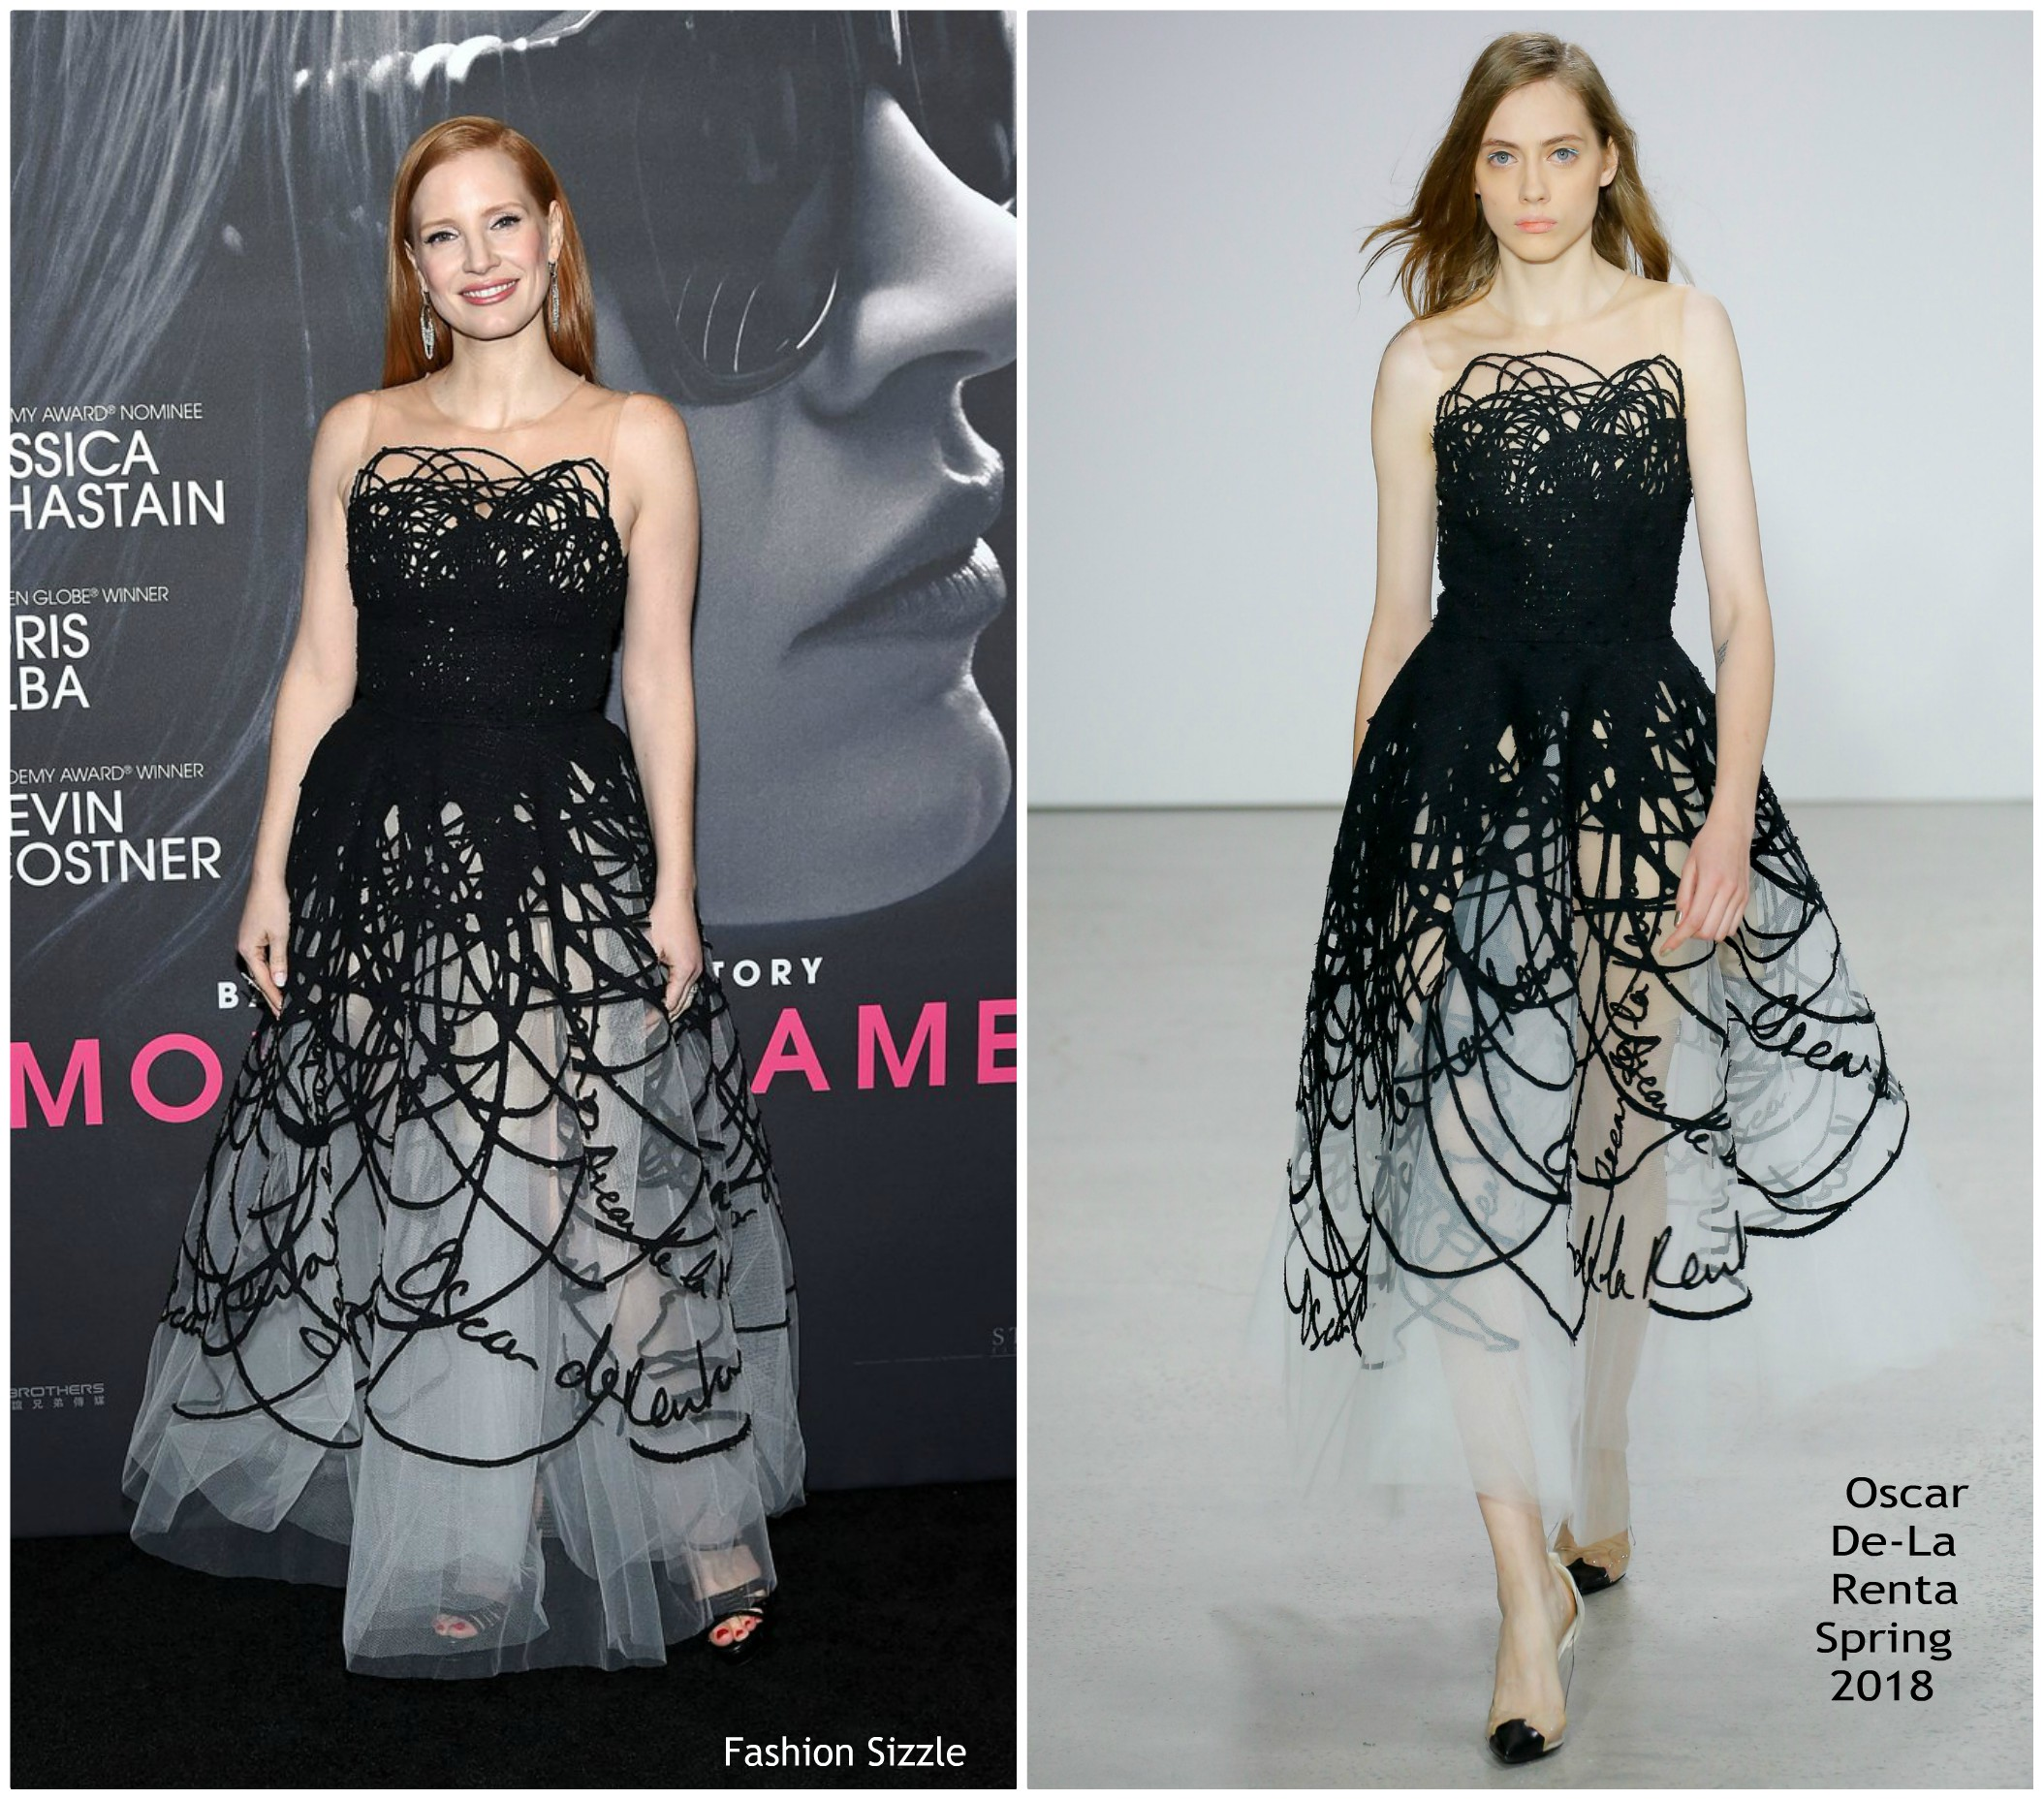 jessica-chastain-in-oscar-de-la-renta-mollys-game-new-york-premiere